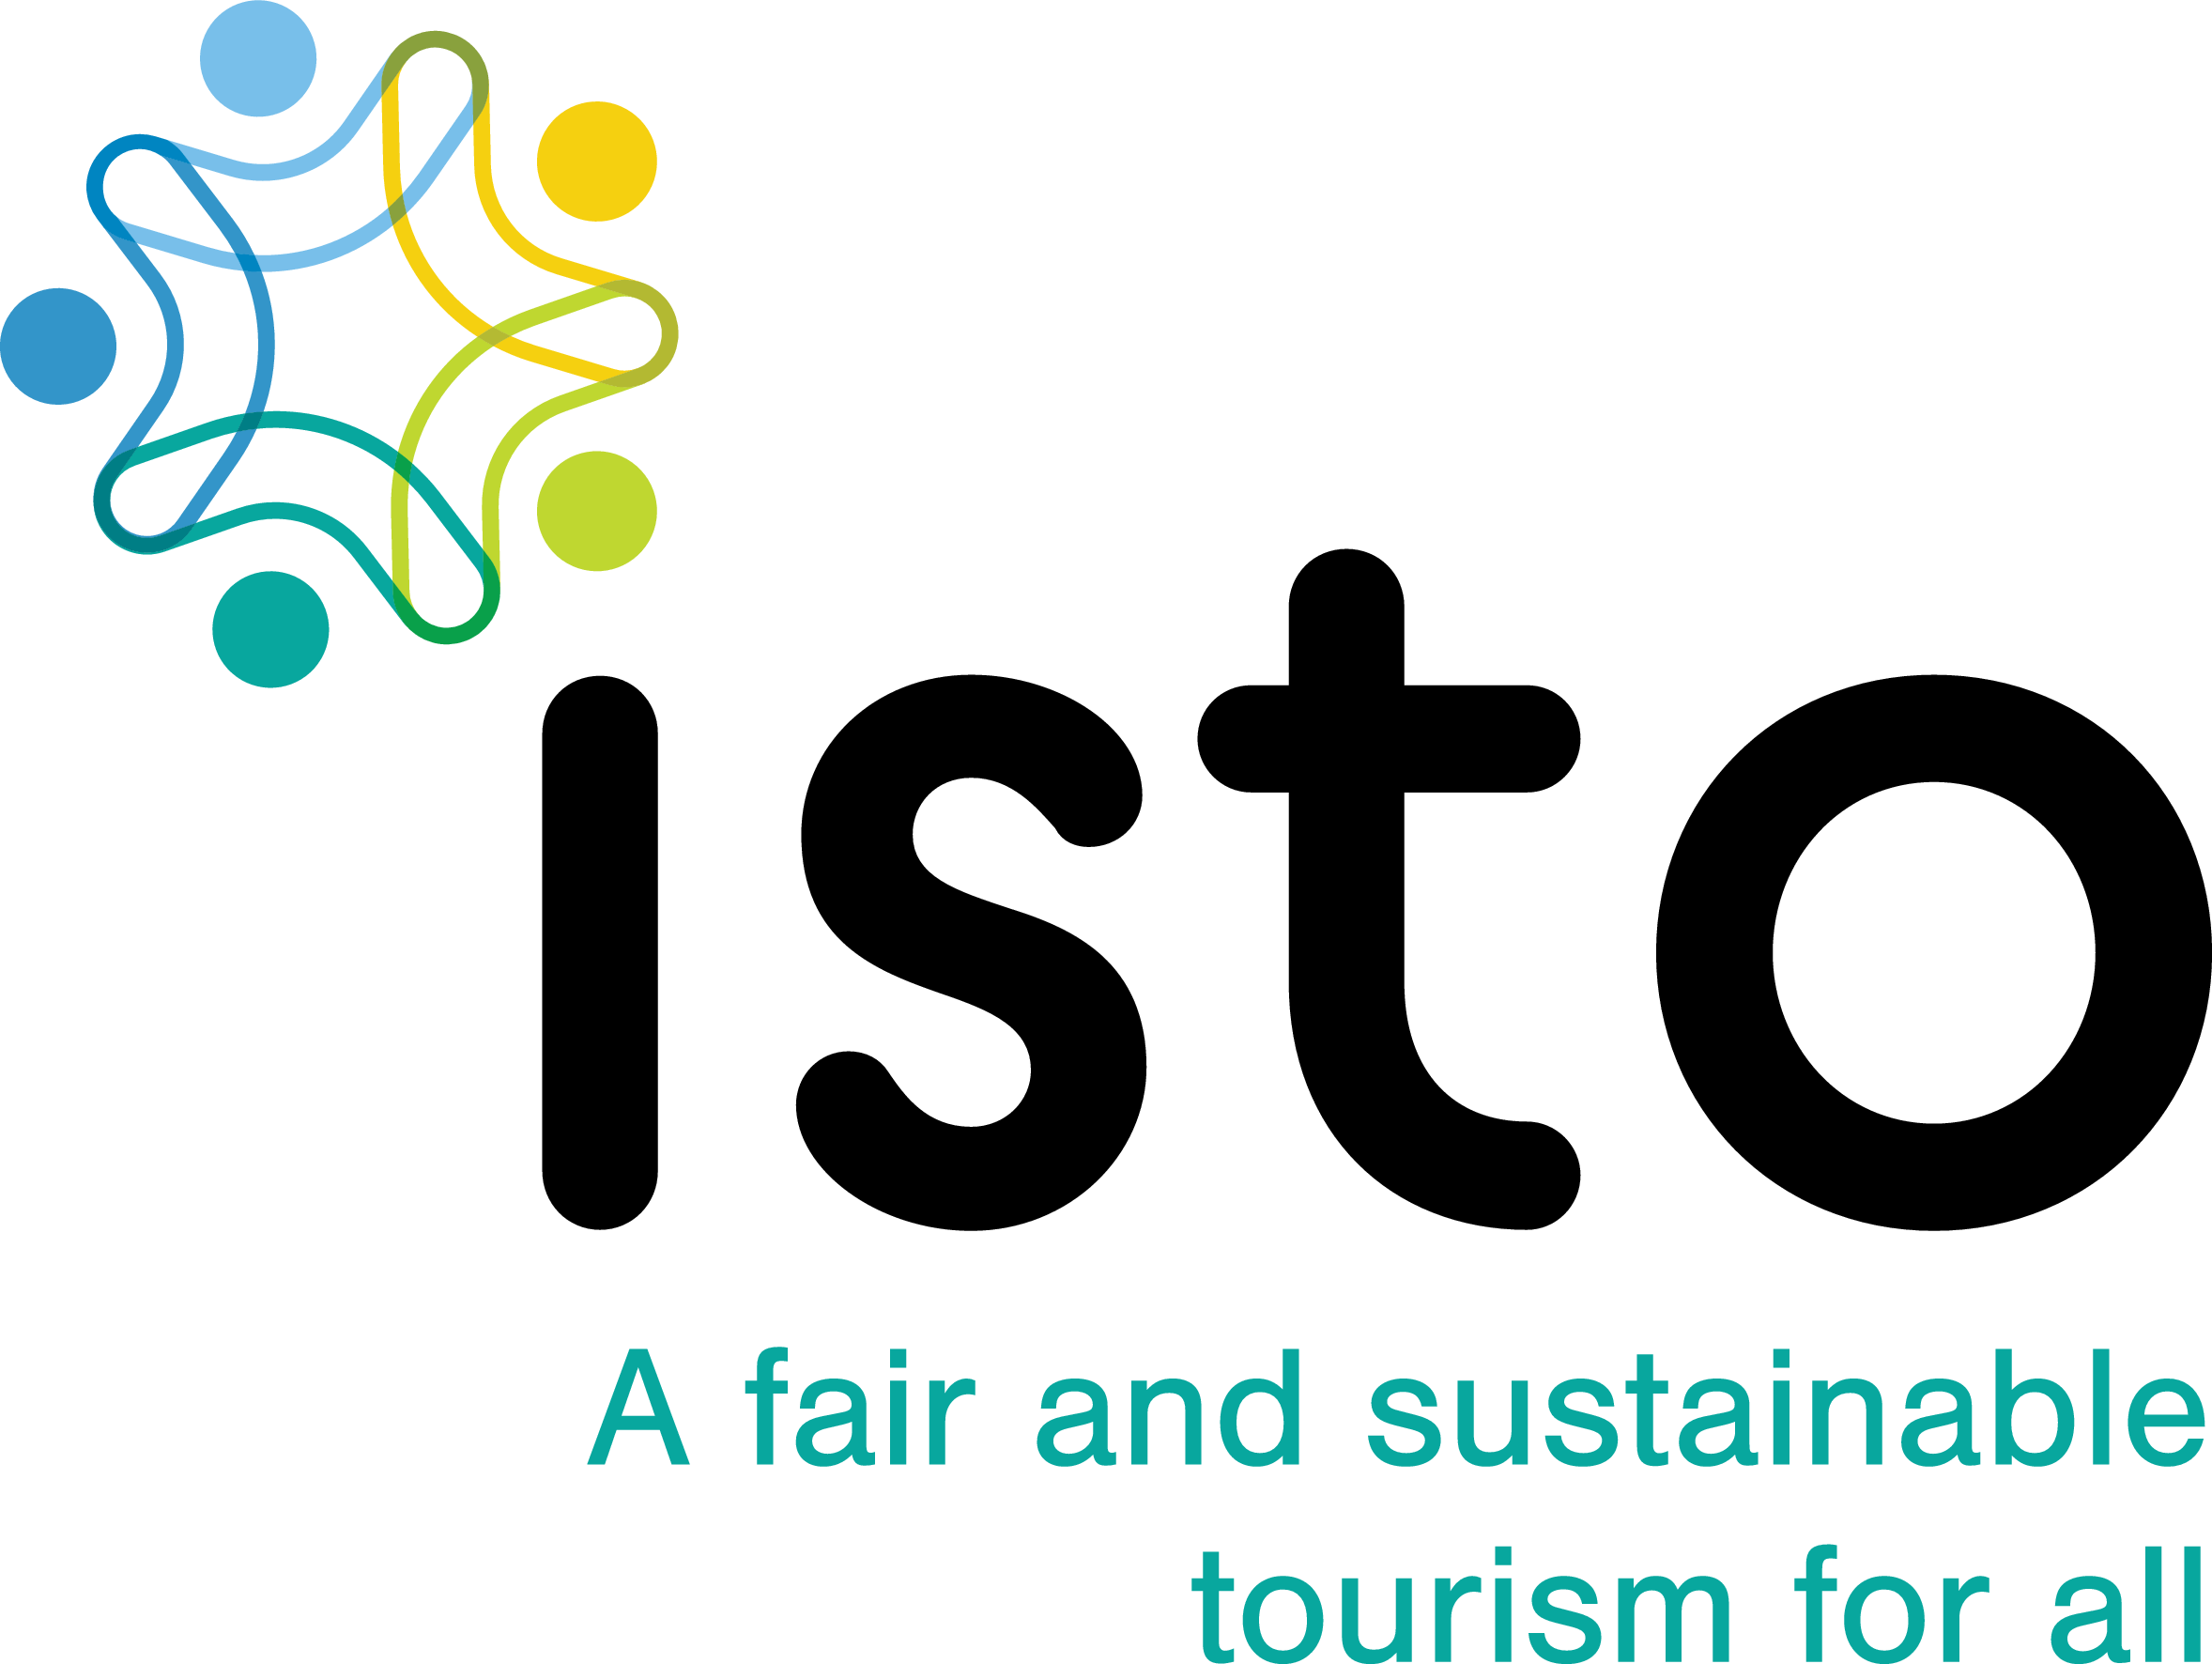 Report of ISTO International on domestic tourism